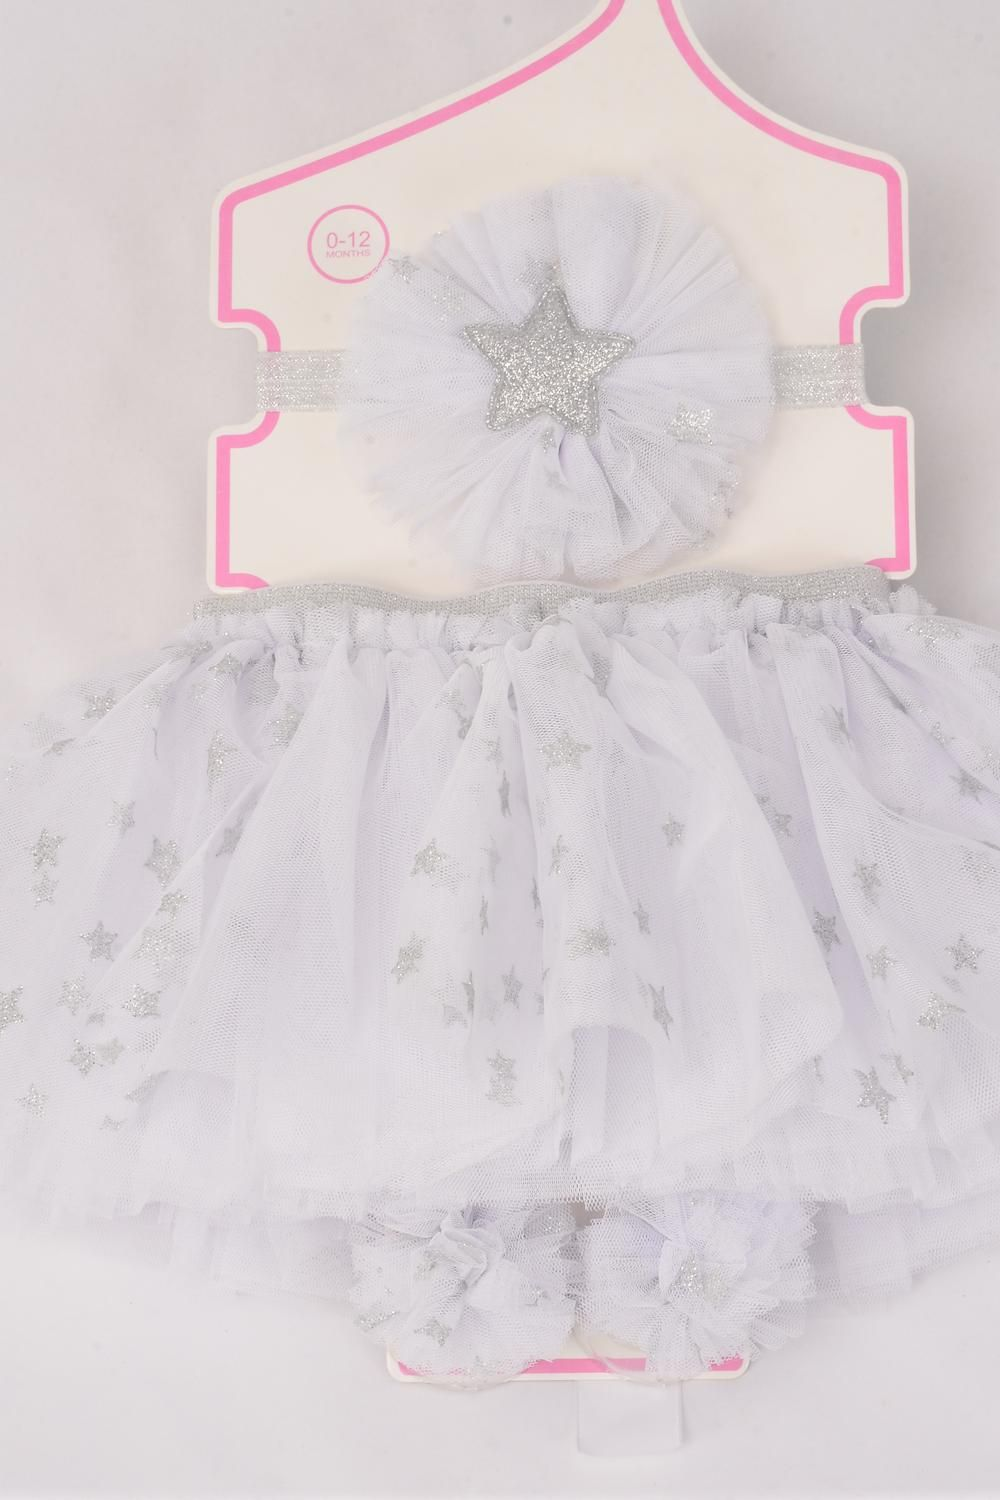 Tutu Stars Dust Theme 3 pcs Sets White/Sets **White** Size-0-12 month,Bow-3'',Shoe/Stretch,Display Card & UPC Code